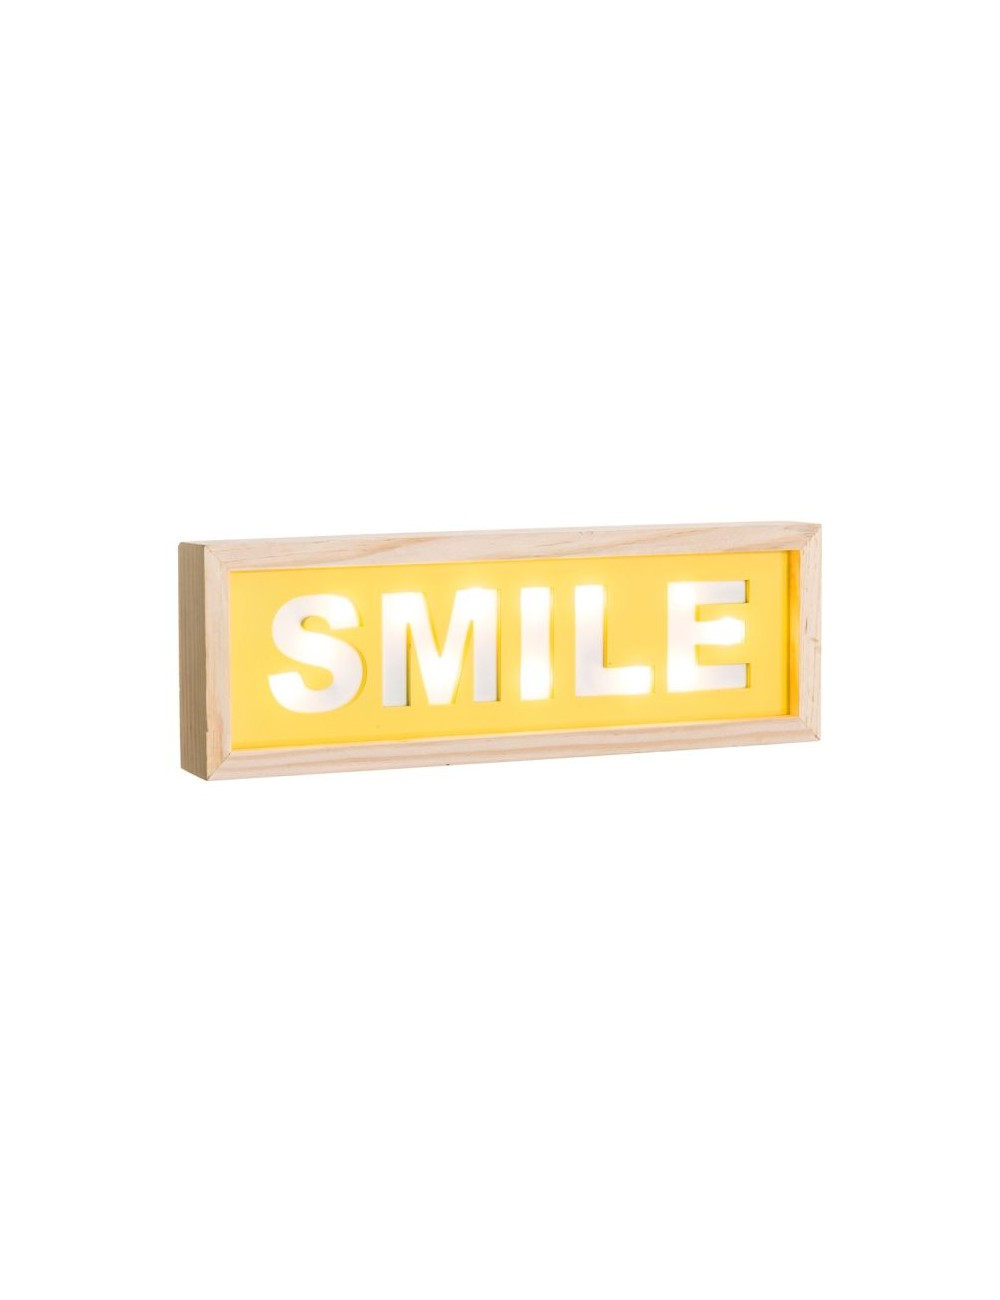 Mural de Pared SMILE con Luz Led